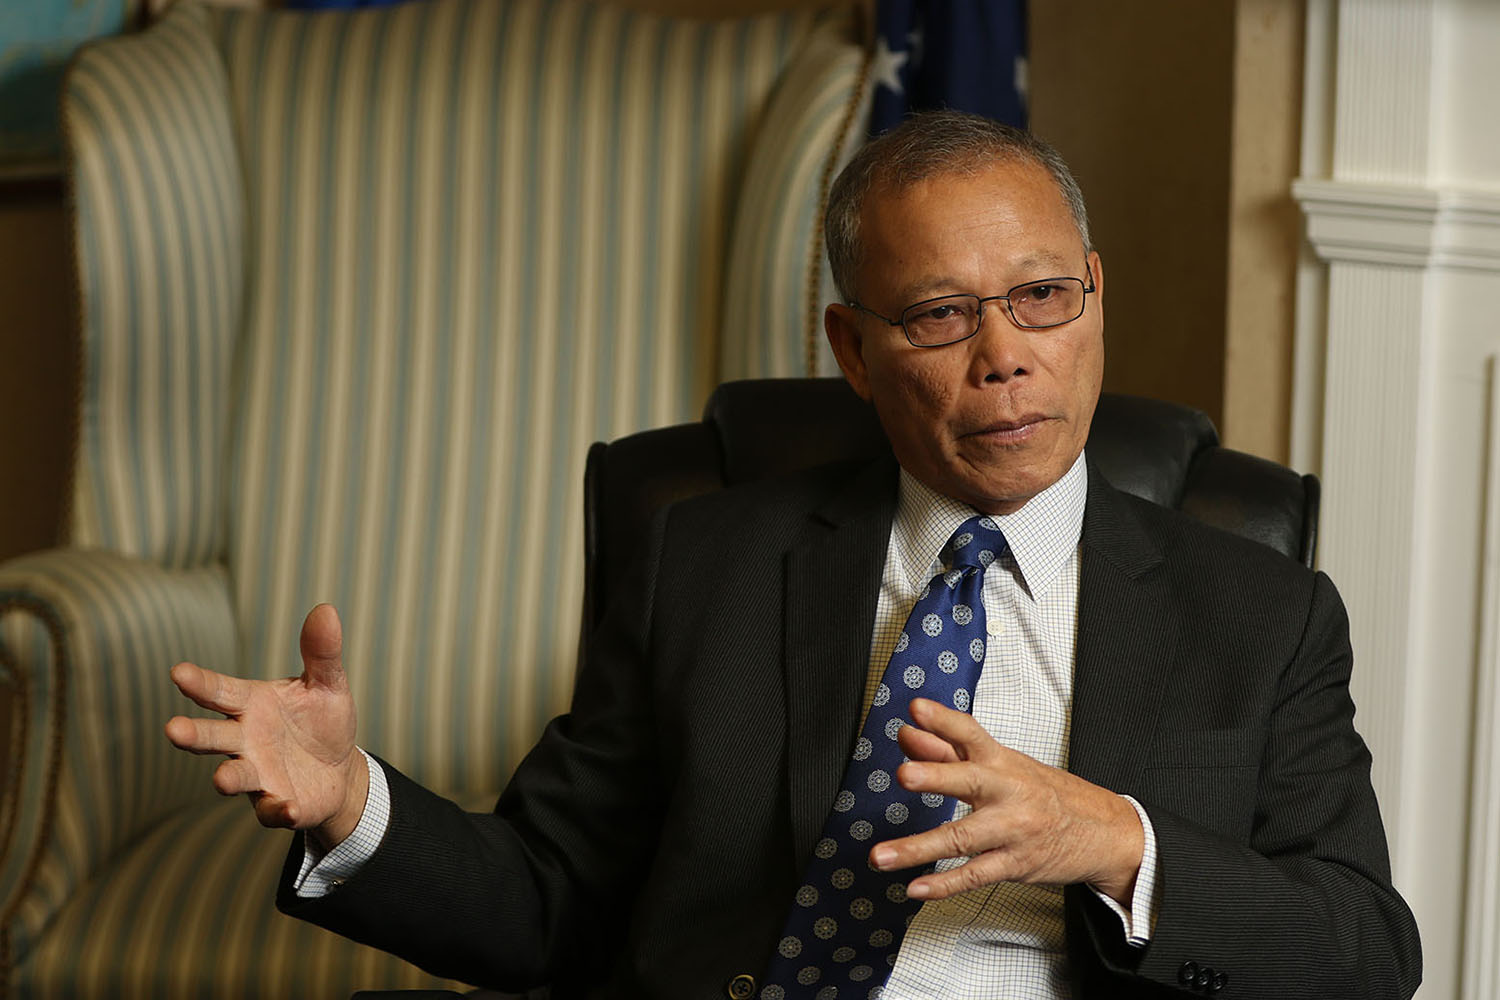 <p>Asterio Takesy, the Federated States of Micronesia ambassador to the United States, in Washington, D.C. Like many Micronesian leaders, he is a graduate of Xavier High School in Chuuk.</p>